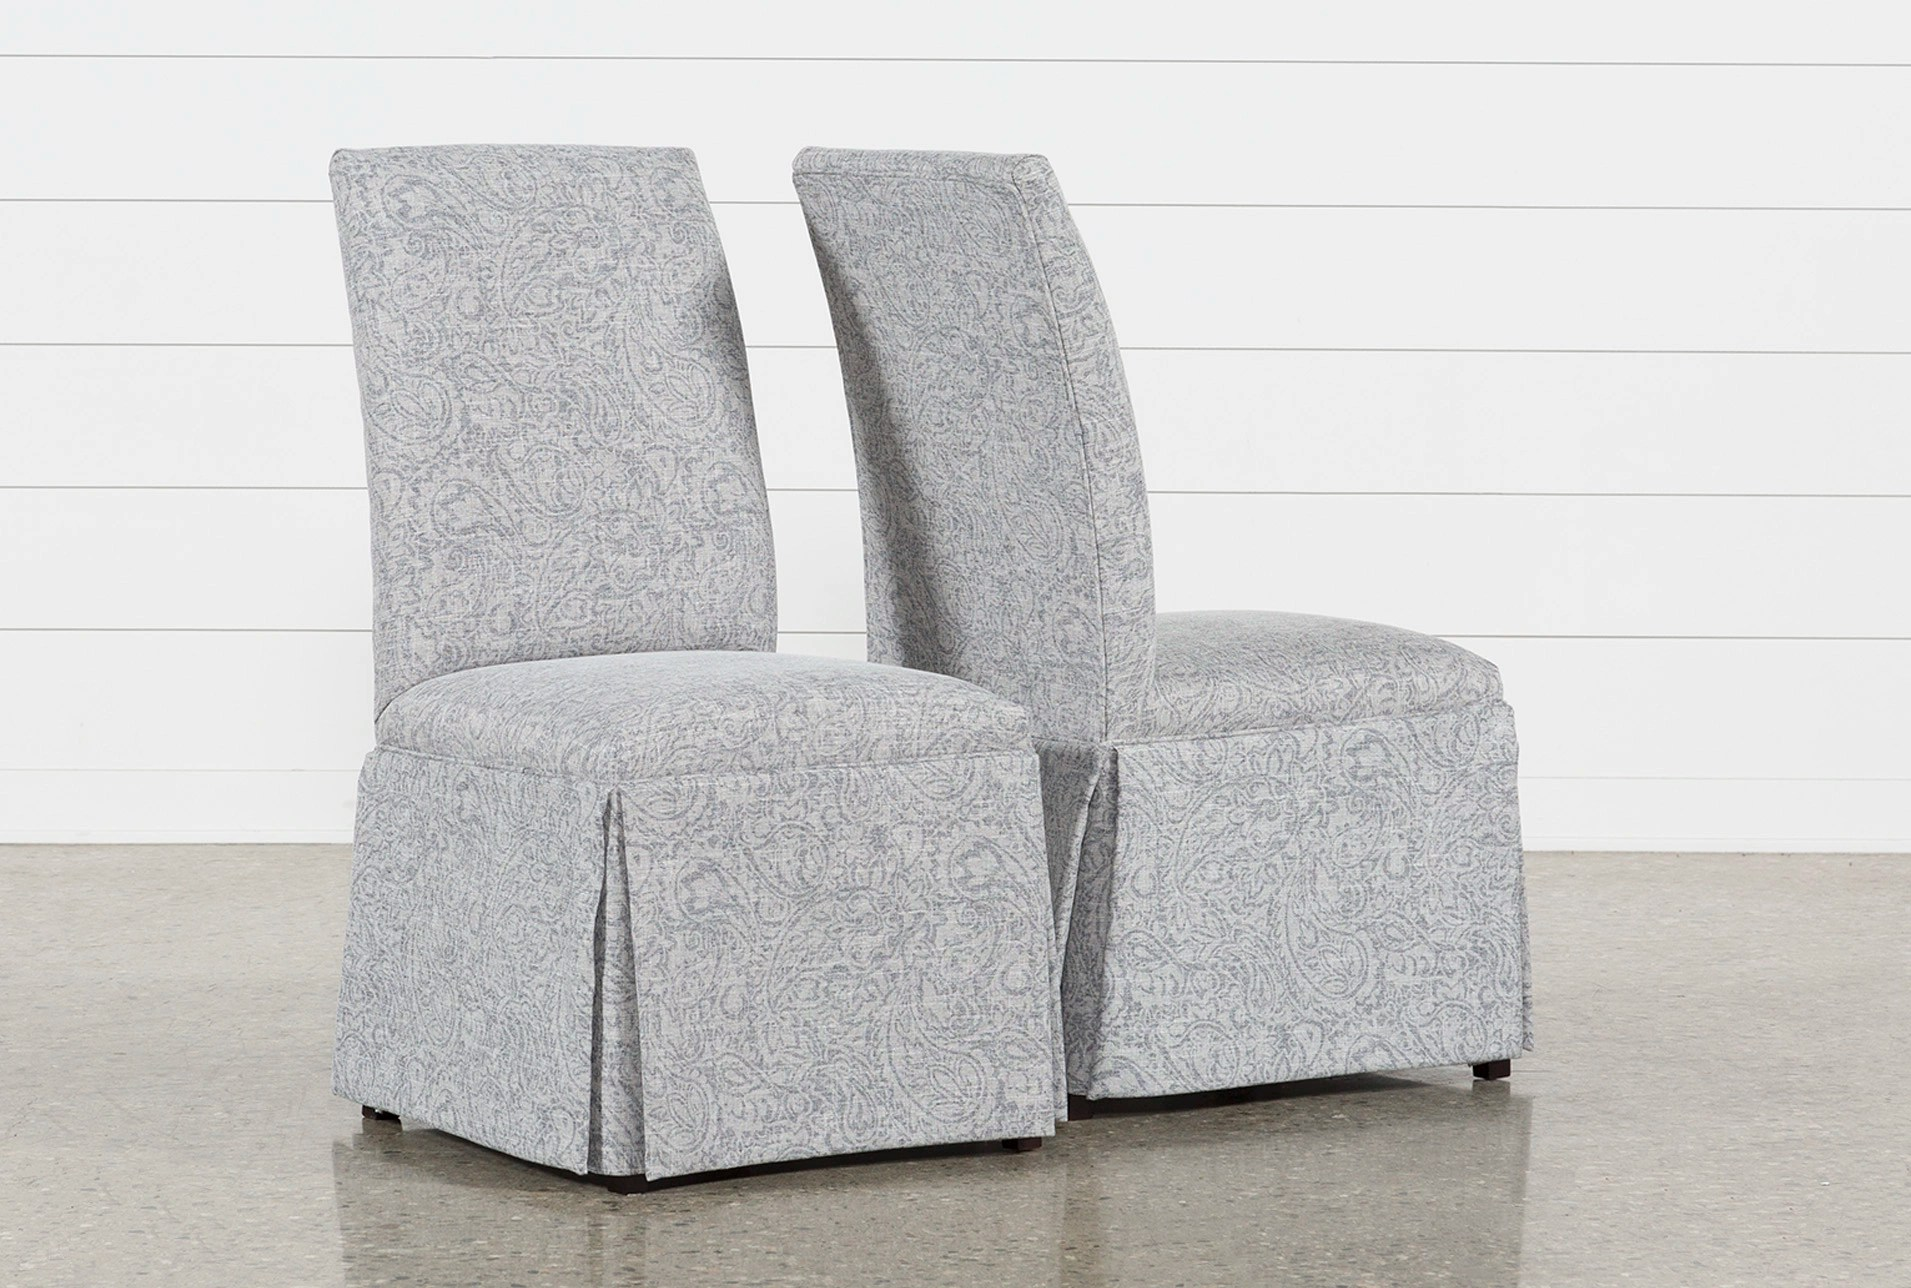 Garten-24 Garten Marble Skirted Side Chairs Set Of 2 Living Spaces